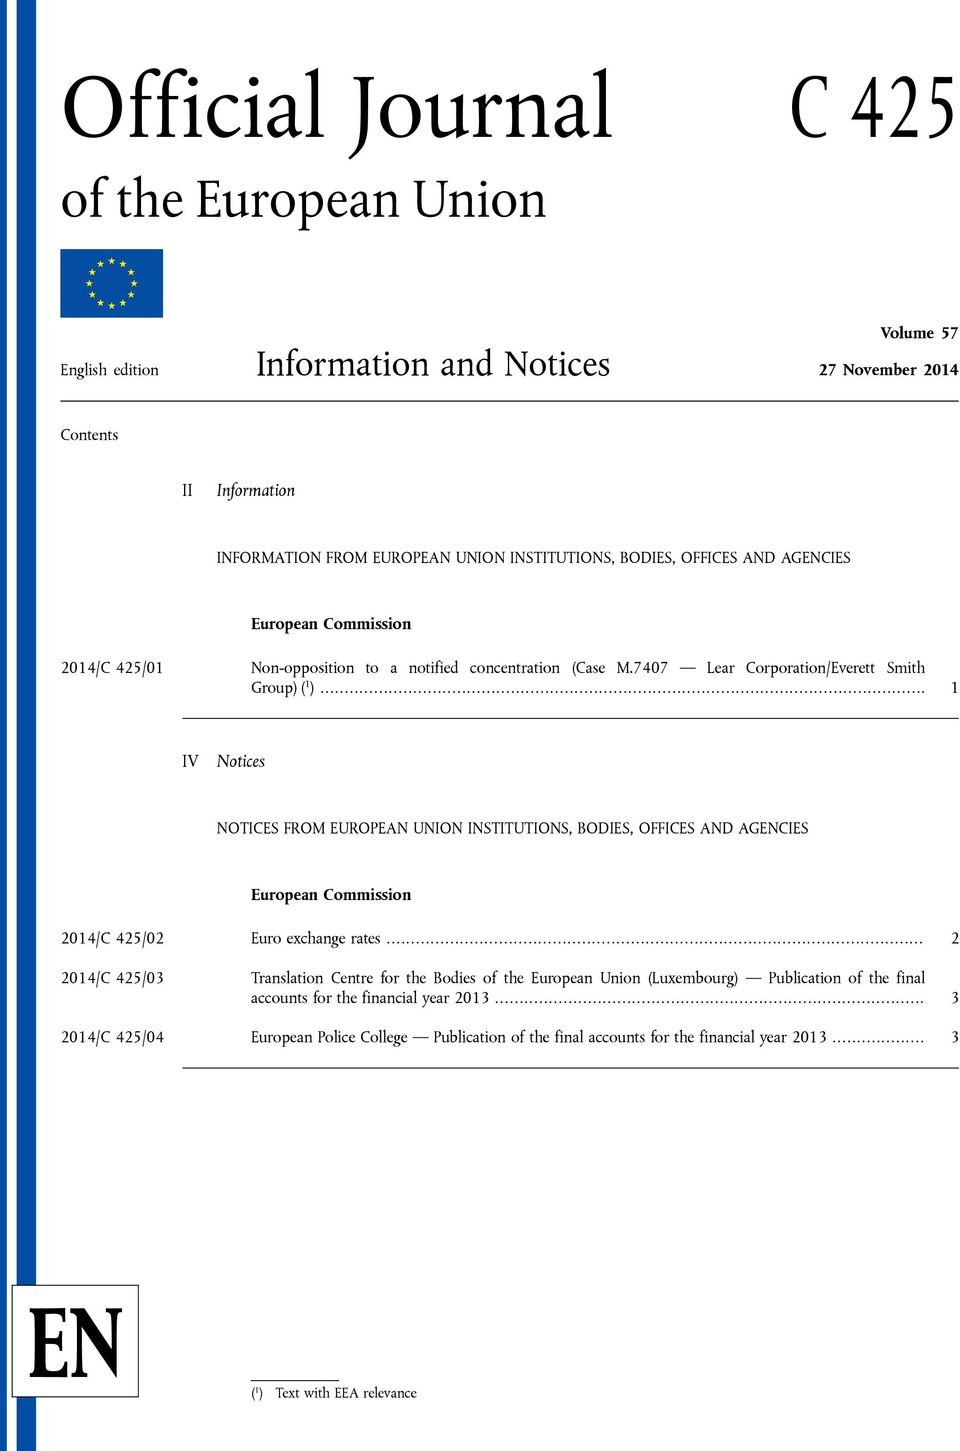 .. 1 IV Notices NOTICES FROM EUROPEAN UNION INSTITUTIONS, BODIES, OFFICES AND AGENCIES European Commission 2014/C 425/02 Euro exchange rates.